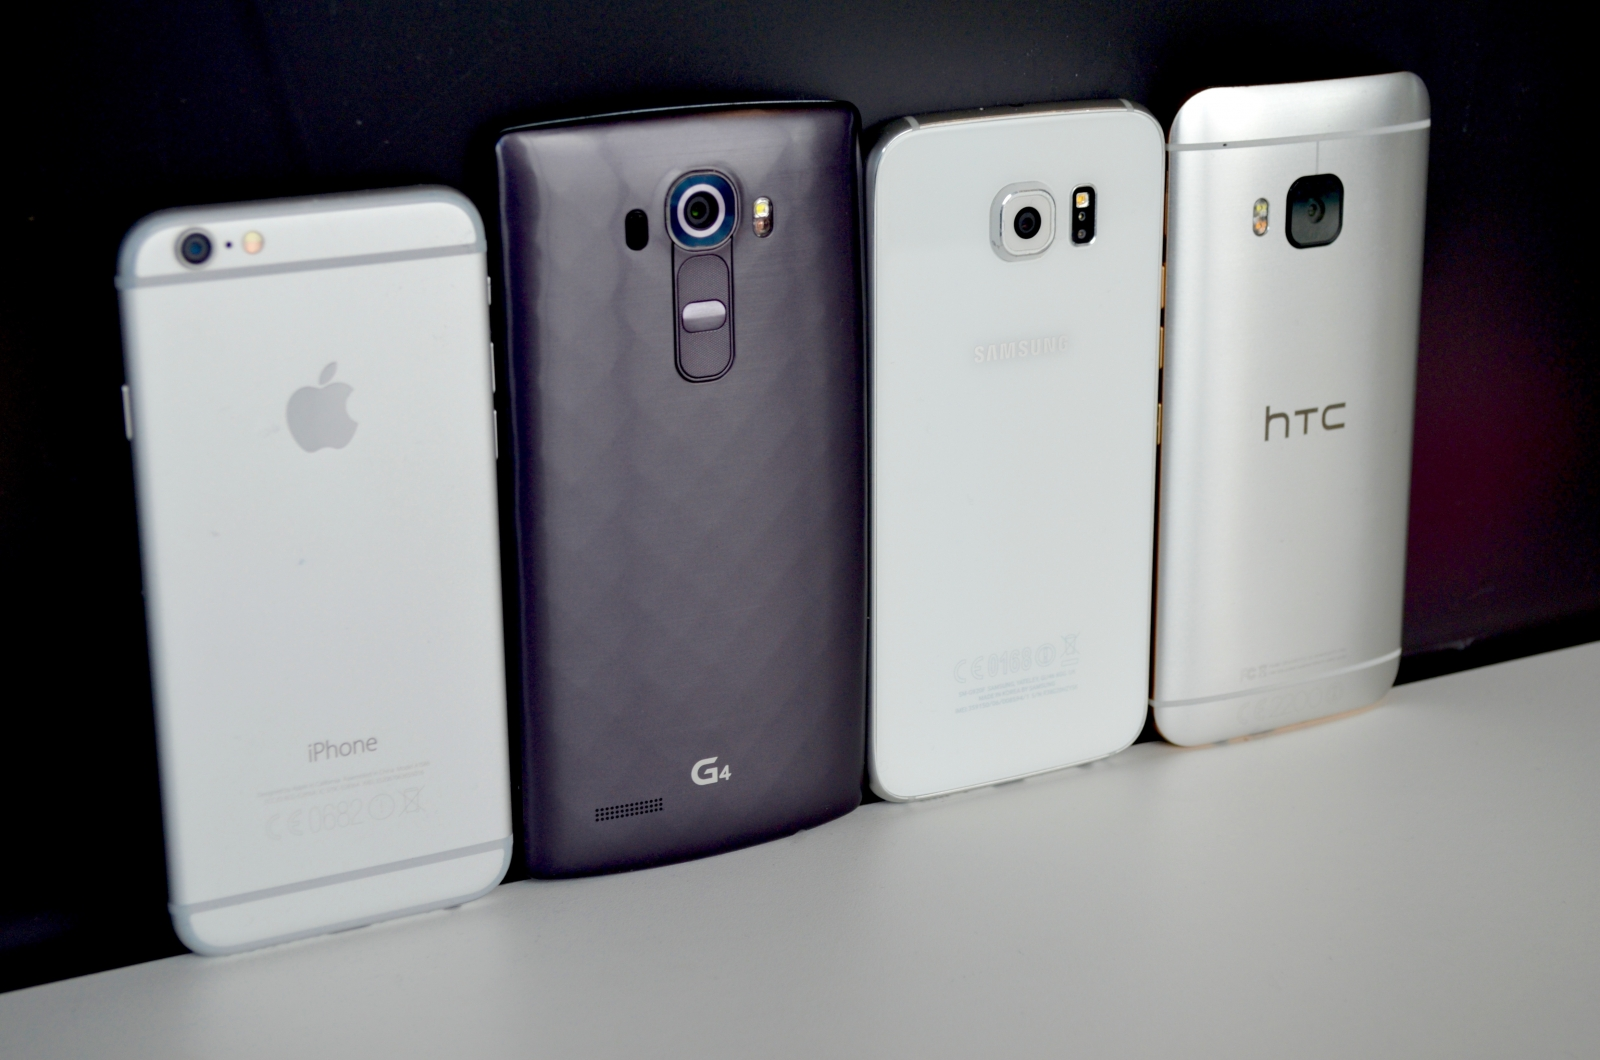 iPhone 6 Galaxy S6 HTC M9 G4